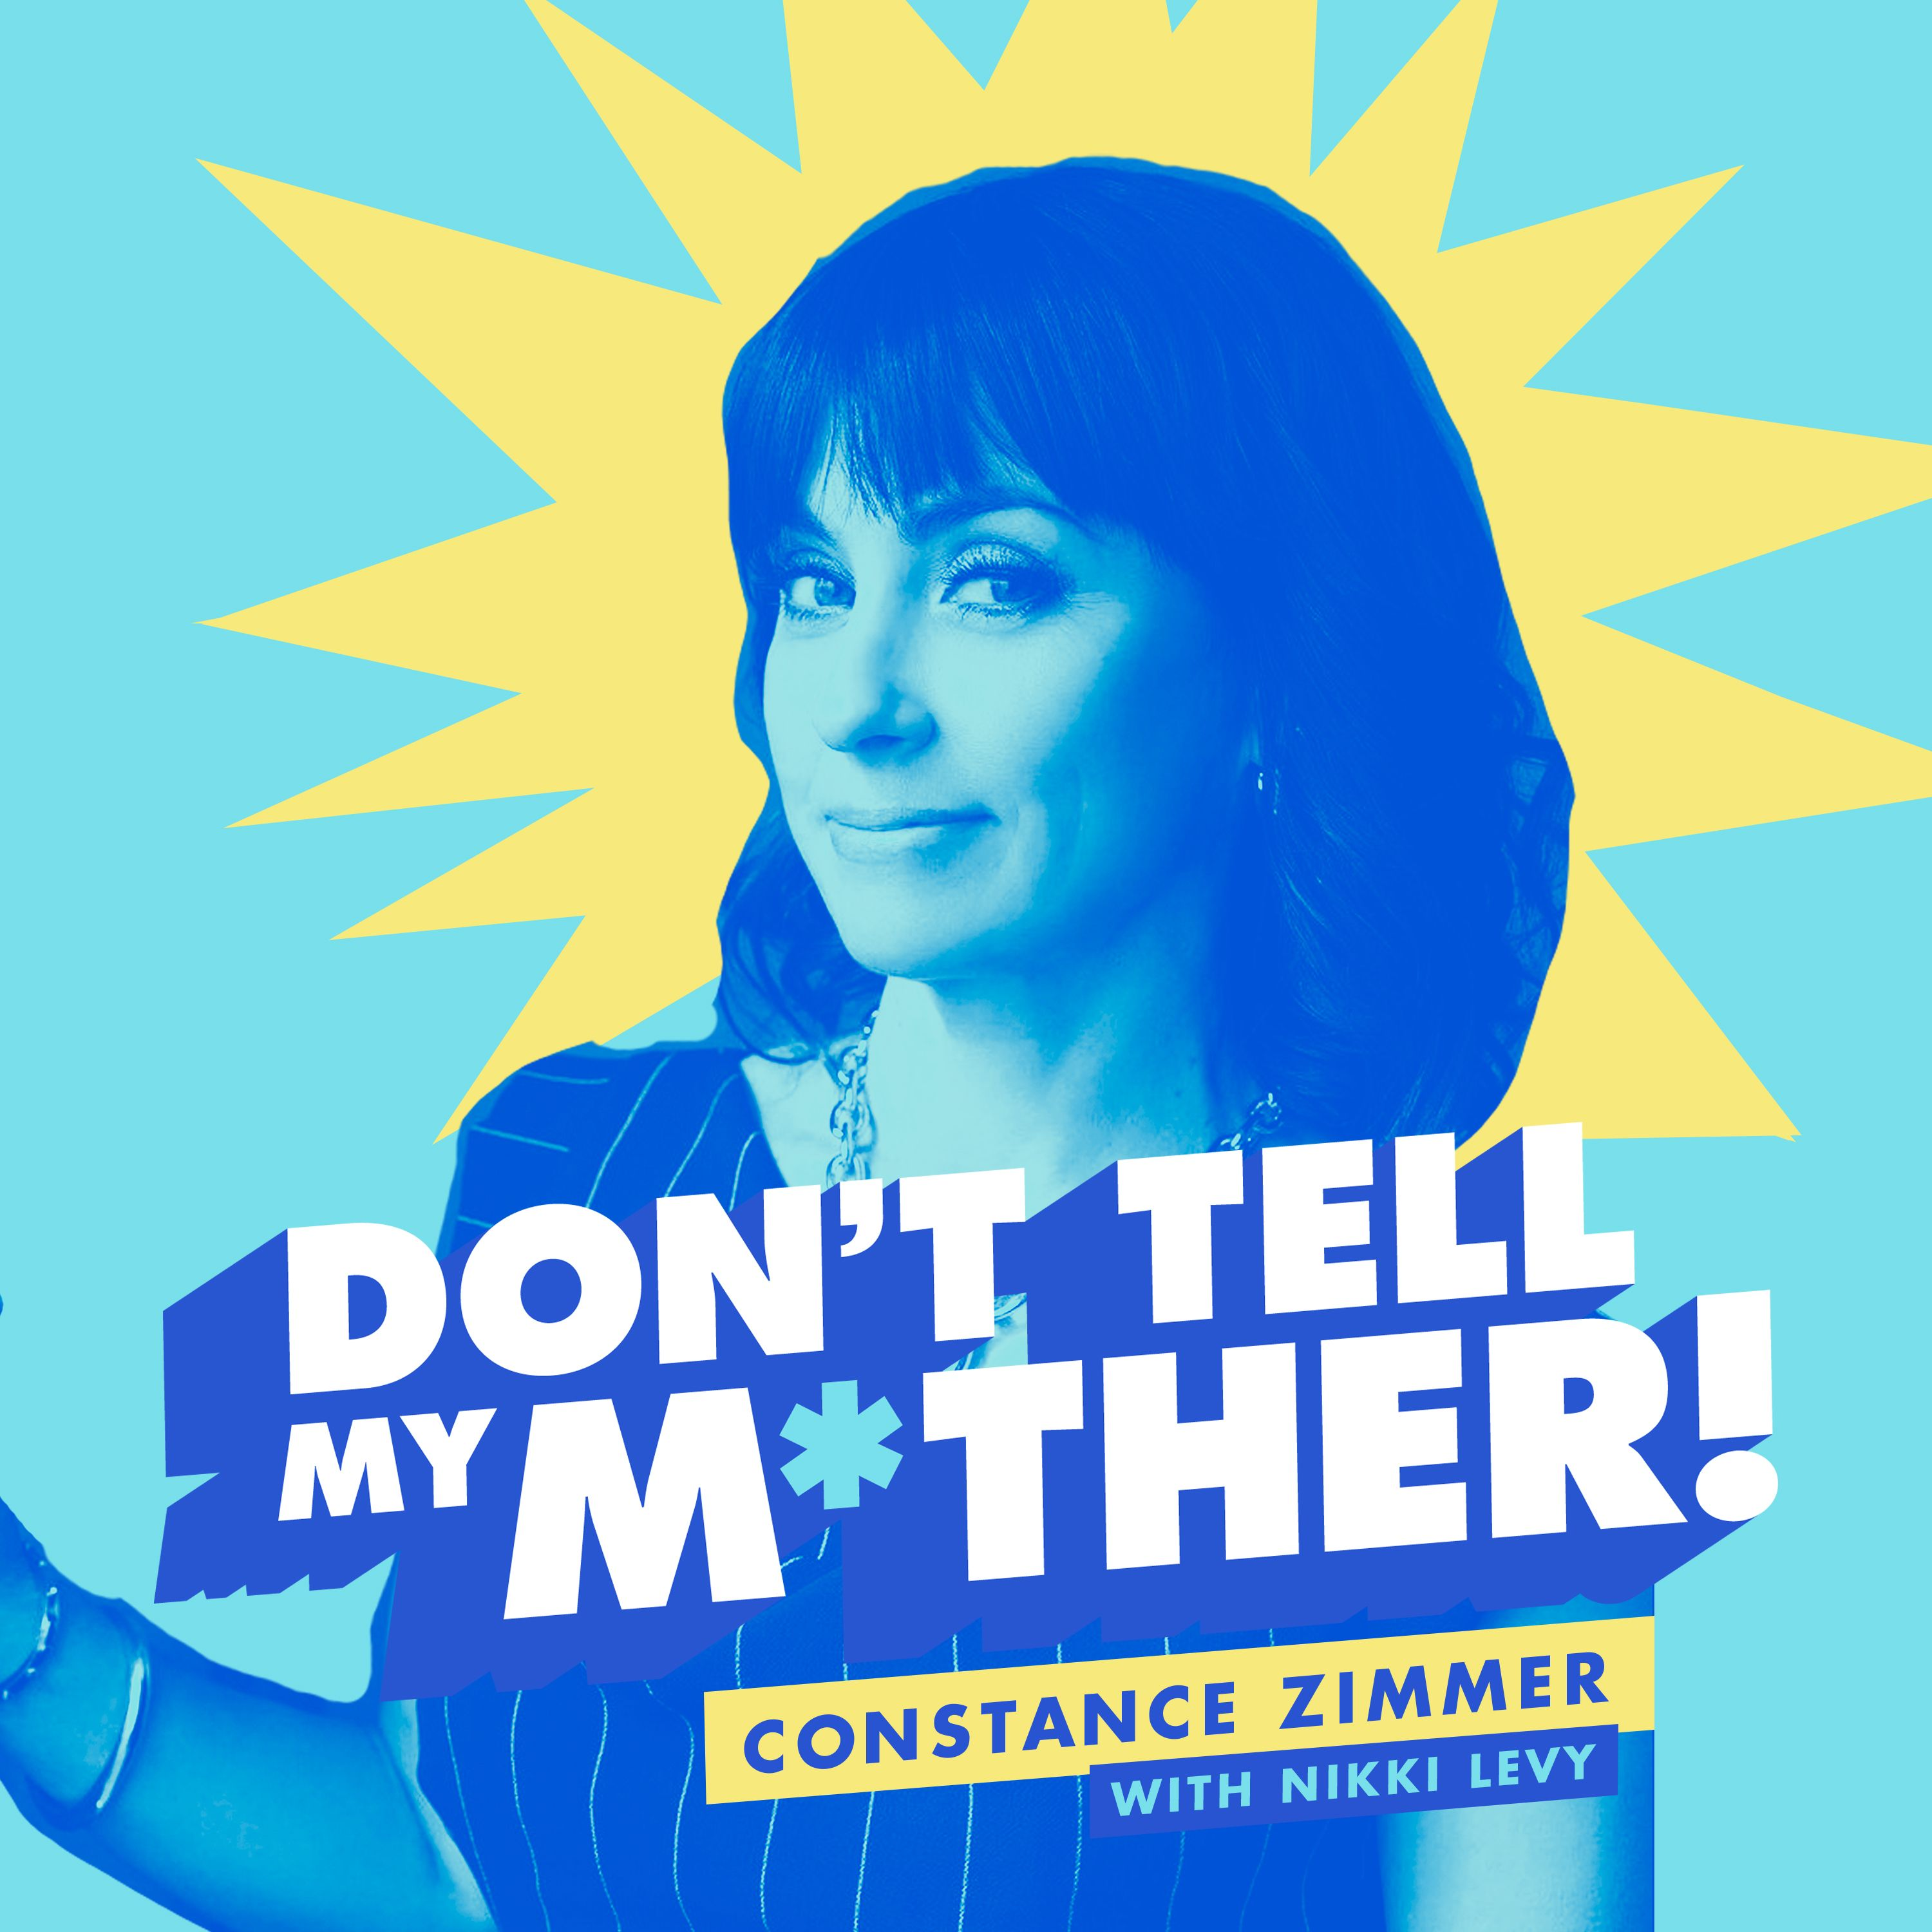 Constance Zimmer Dated a Rock Star (And Tells Her Kid!), Part 2